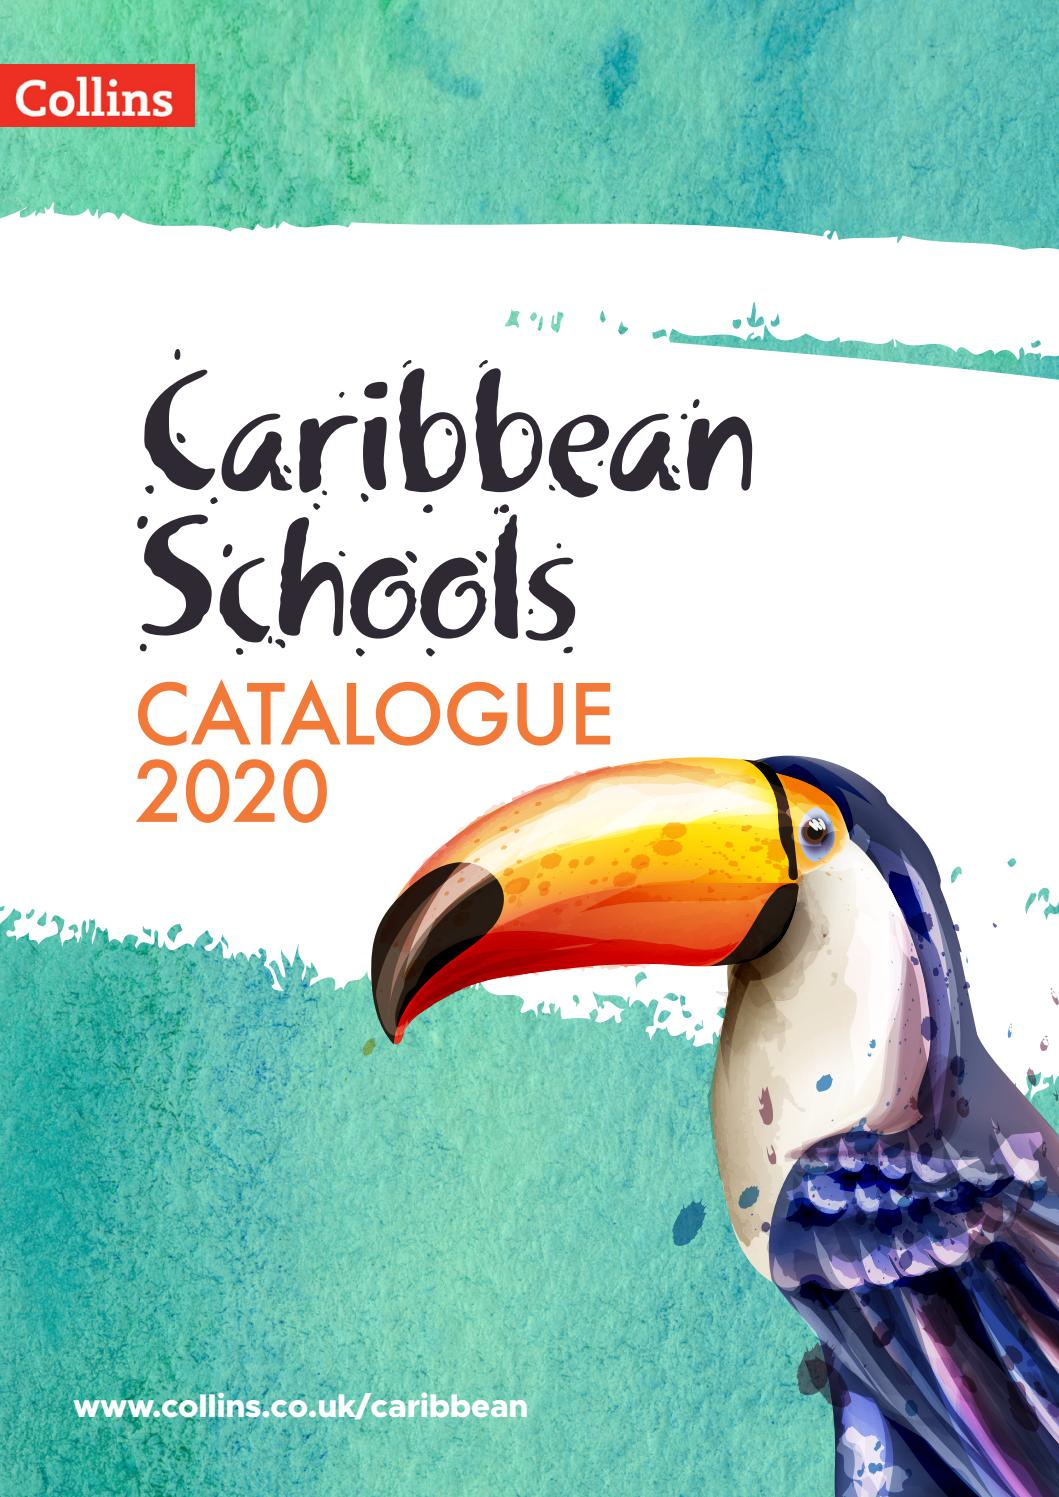 Caribbean Schools Catalogue 2020 By Collins Issuu